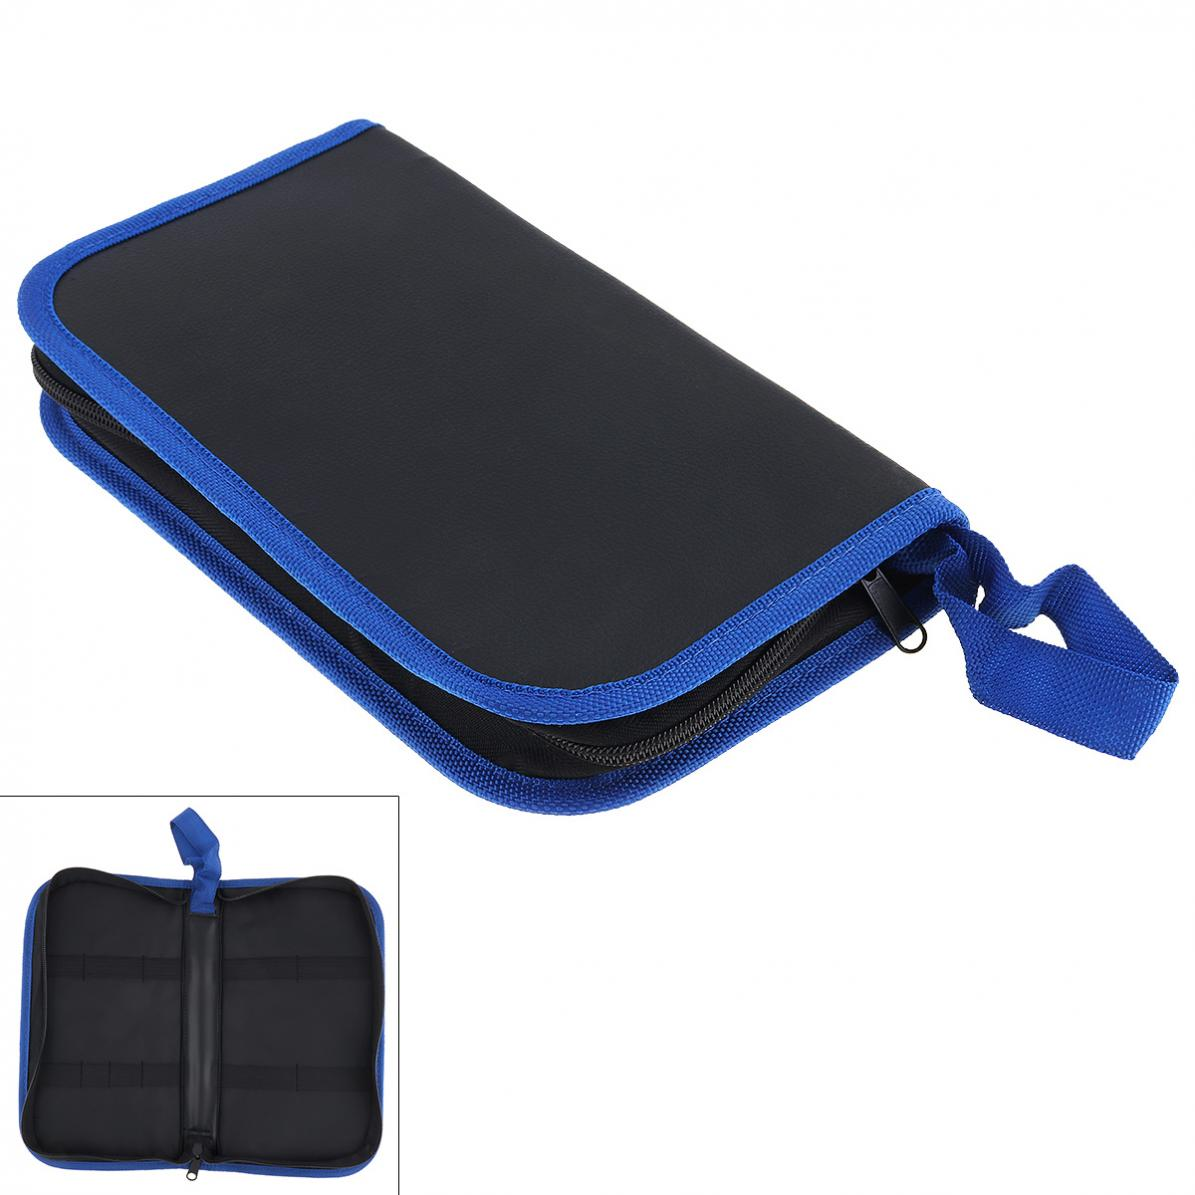 Tool Bags Portable Multifunction Tool Kit Bag With PU Leather Surface Material And Zipper For Maintenance Tool Storage